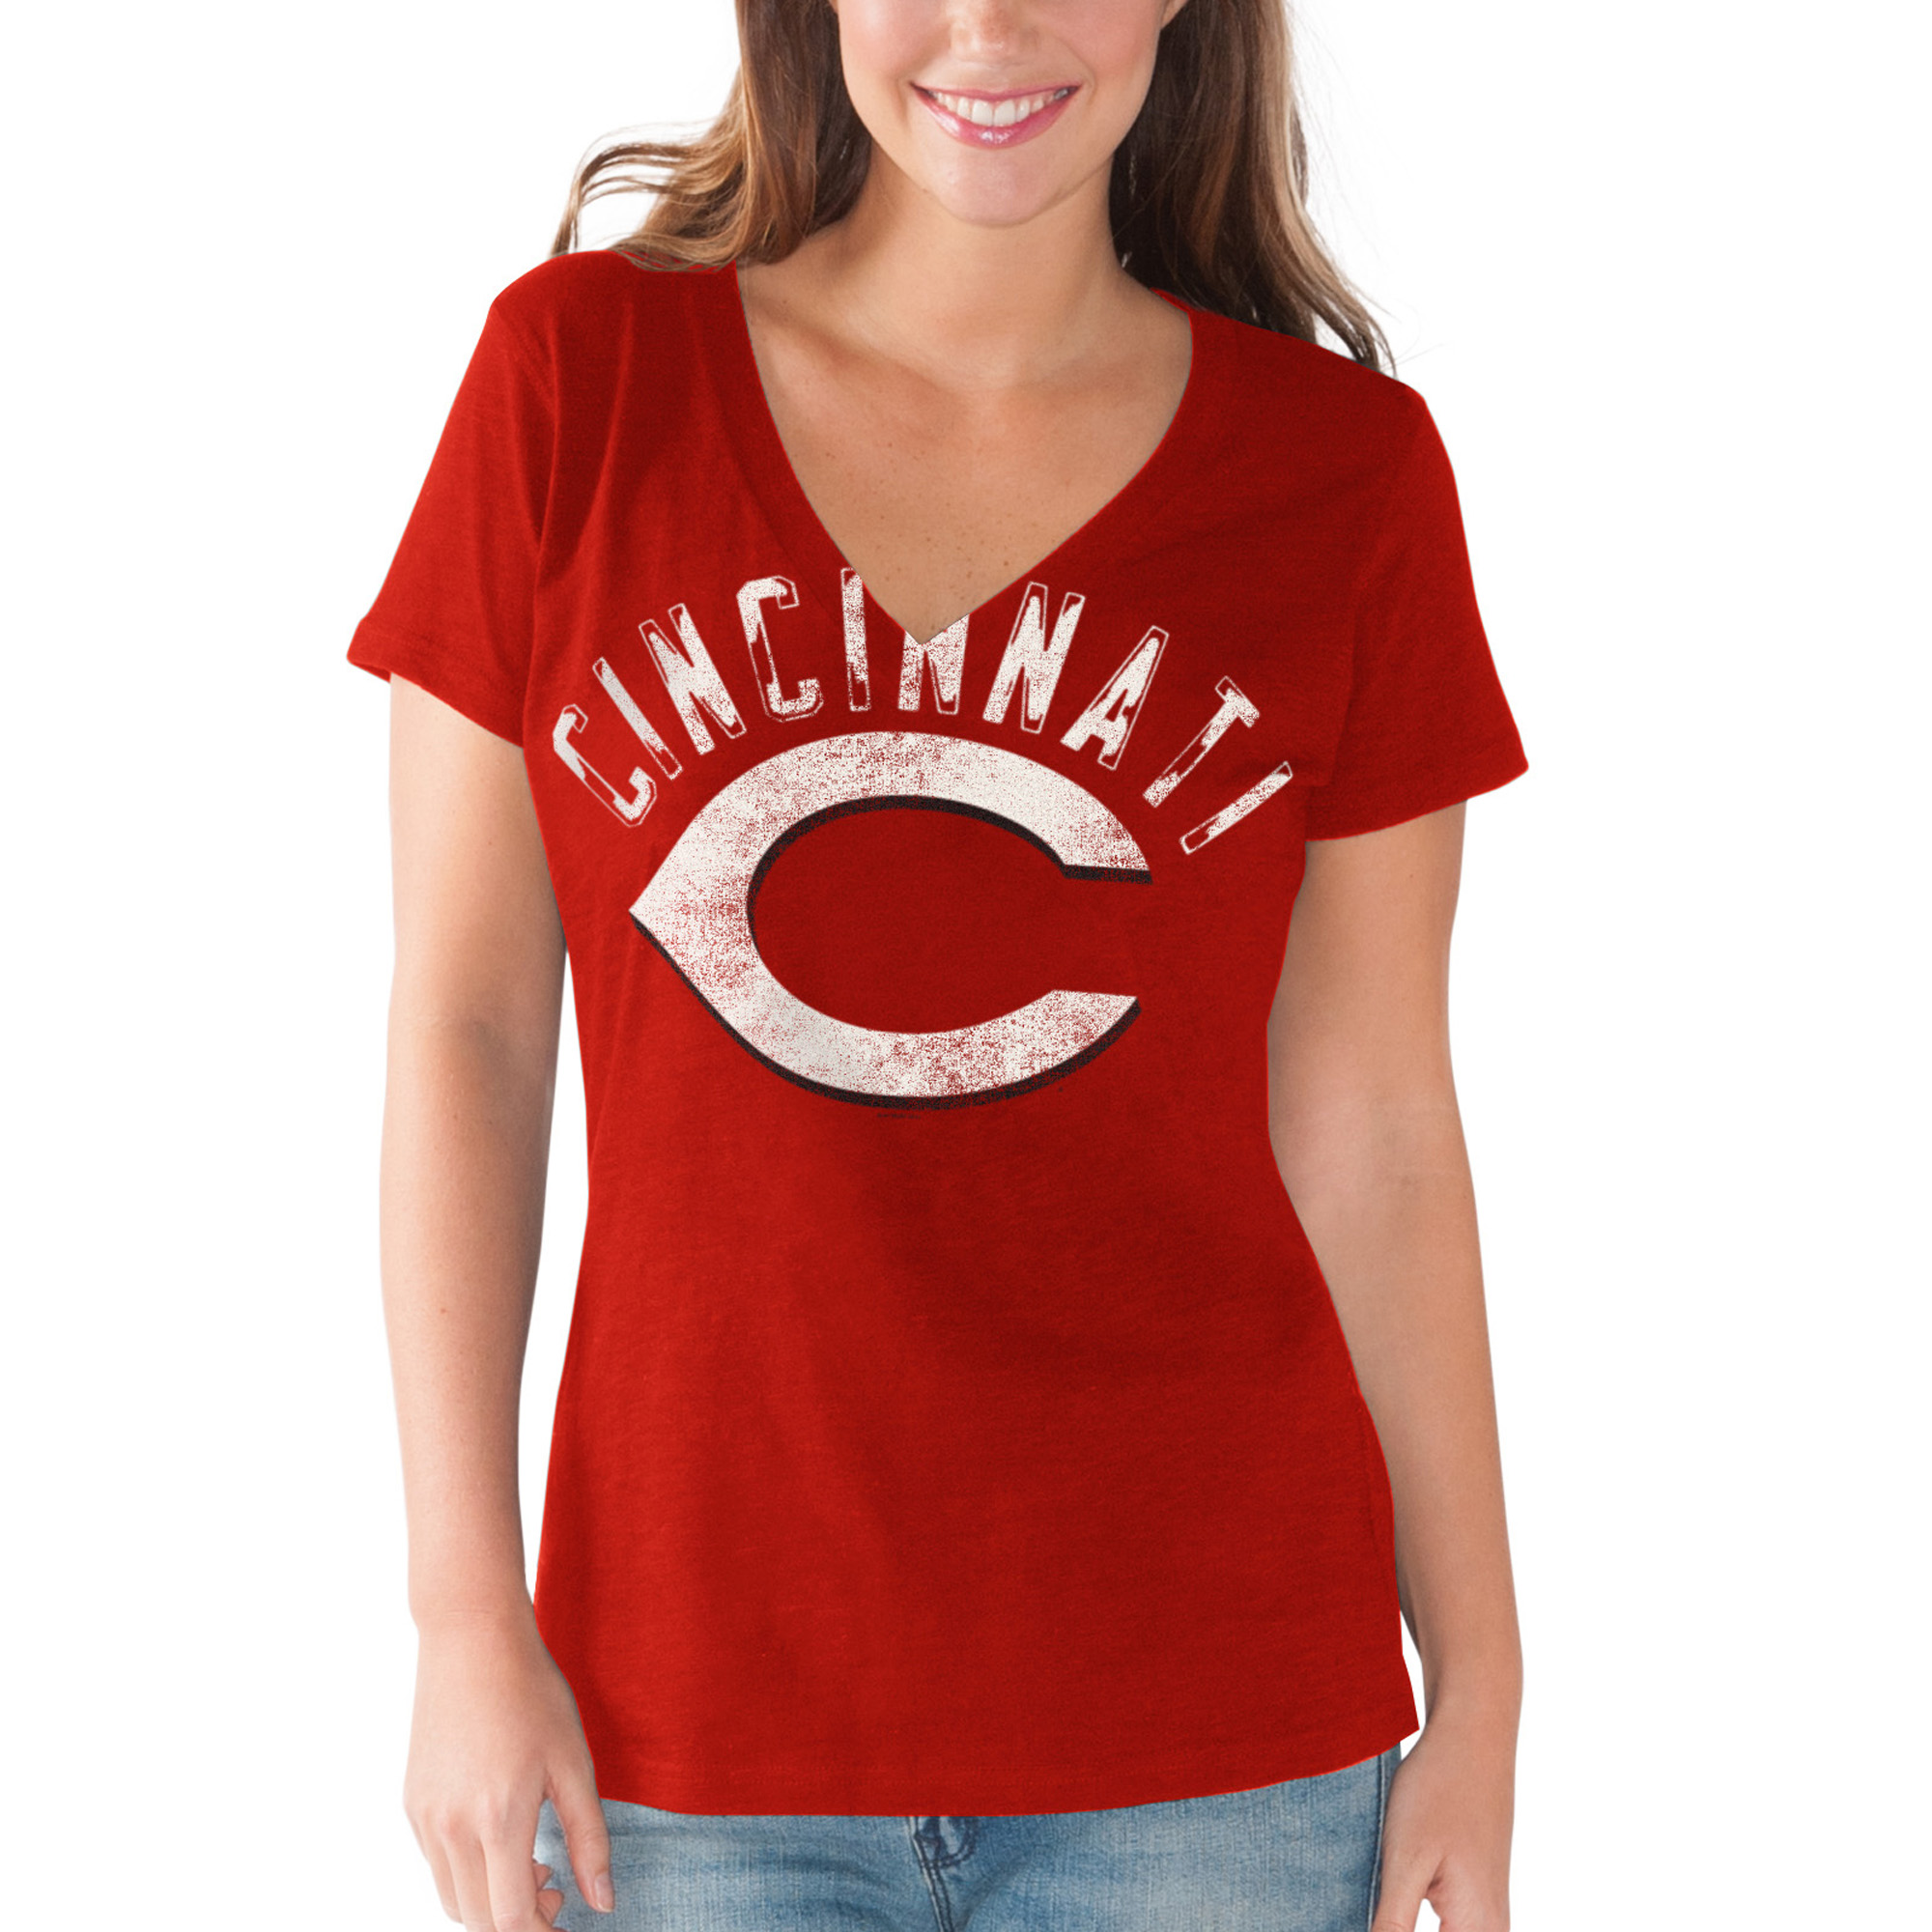 Cincinnati Reds G-III 4Her by Carl Banks Women's Round the Bases V-Neck T-Shirt - Red